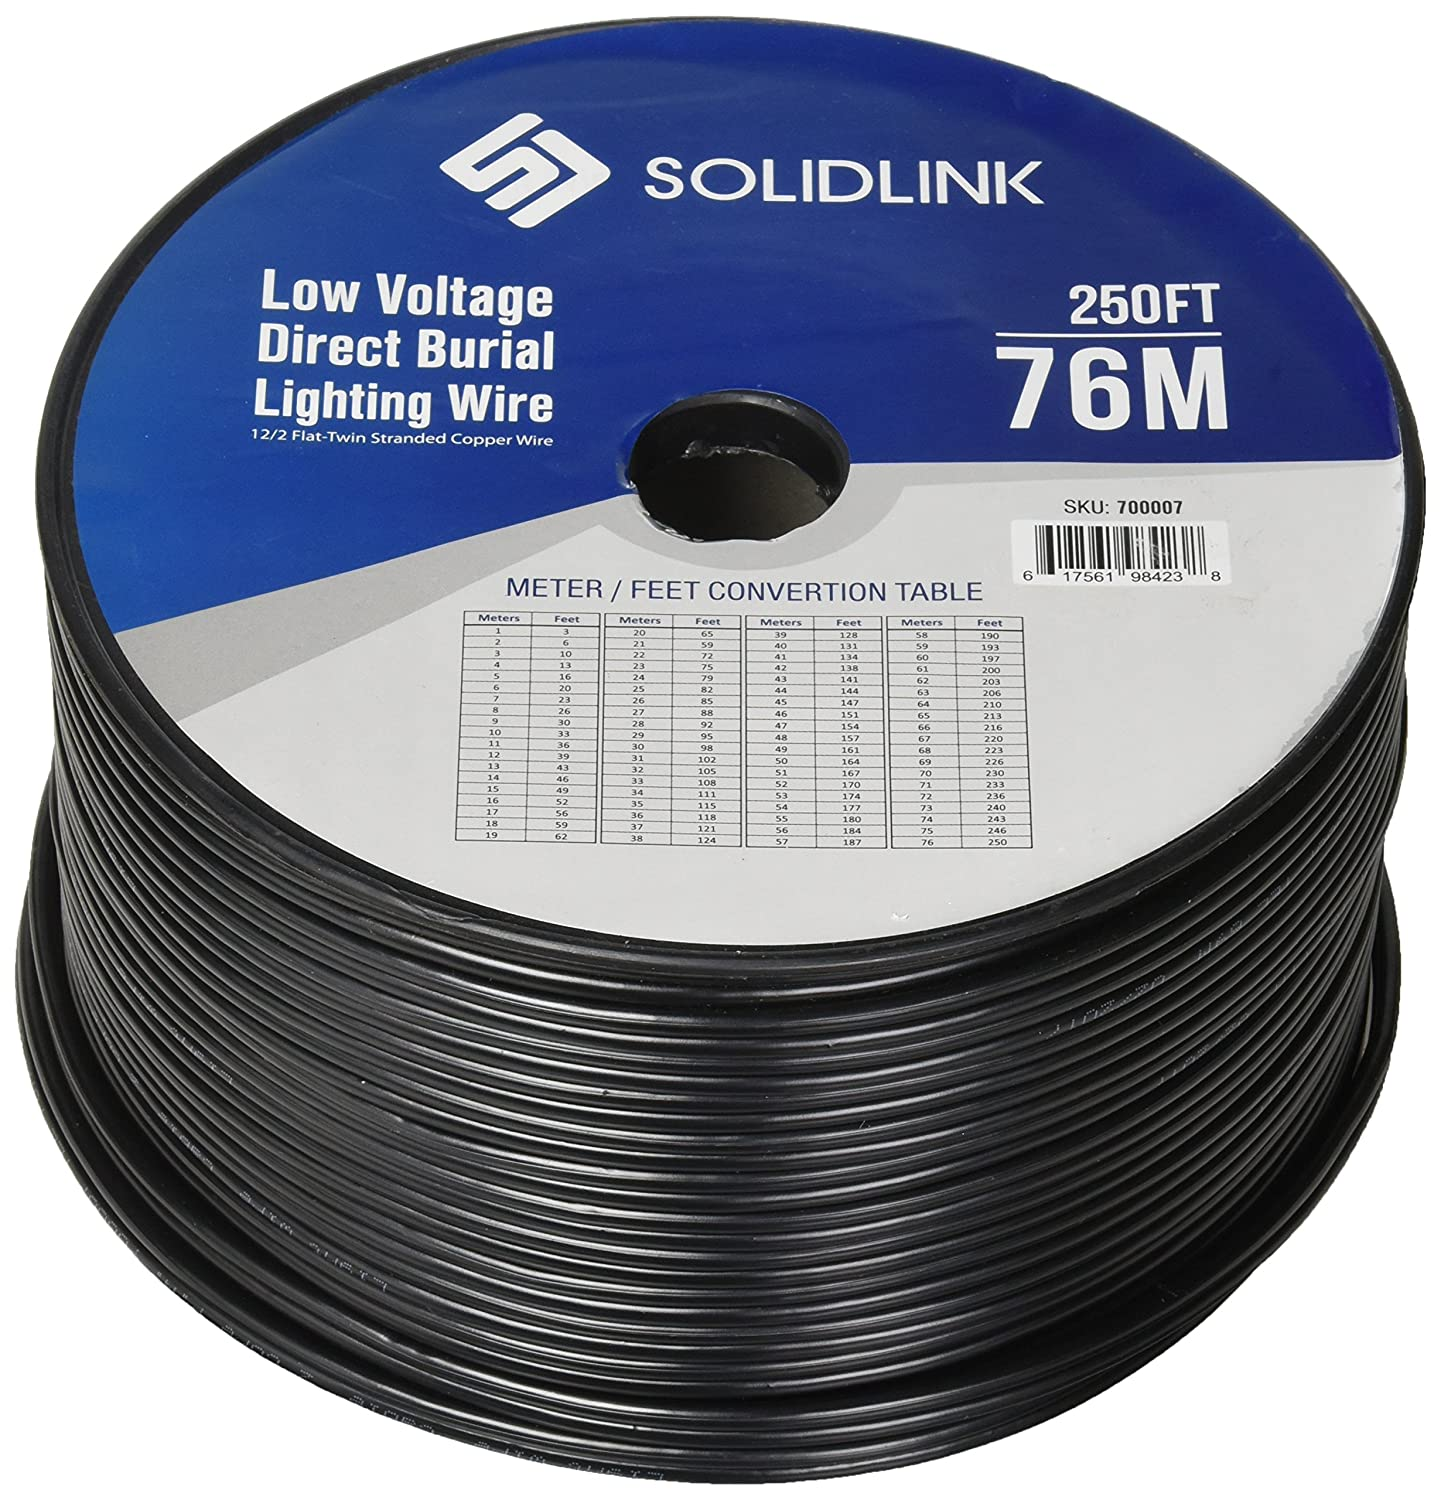 SolidLink 250ft Low Voltage 12 2 Direct Burial Bare COPPER Lighting Wire Parallel Flat Twin Cable For Landscape Lights